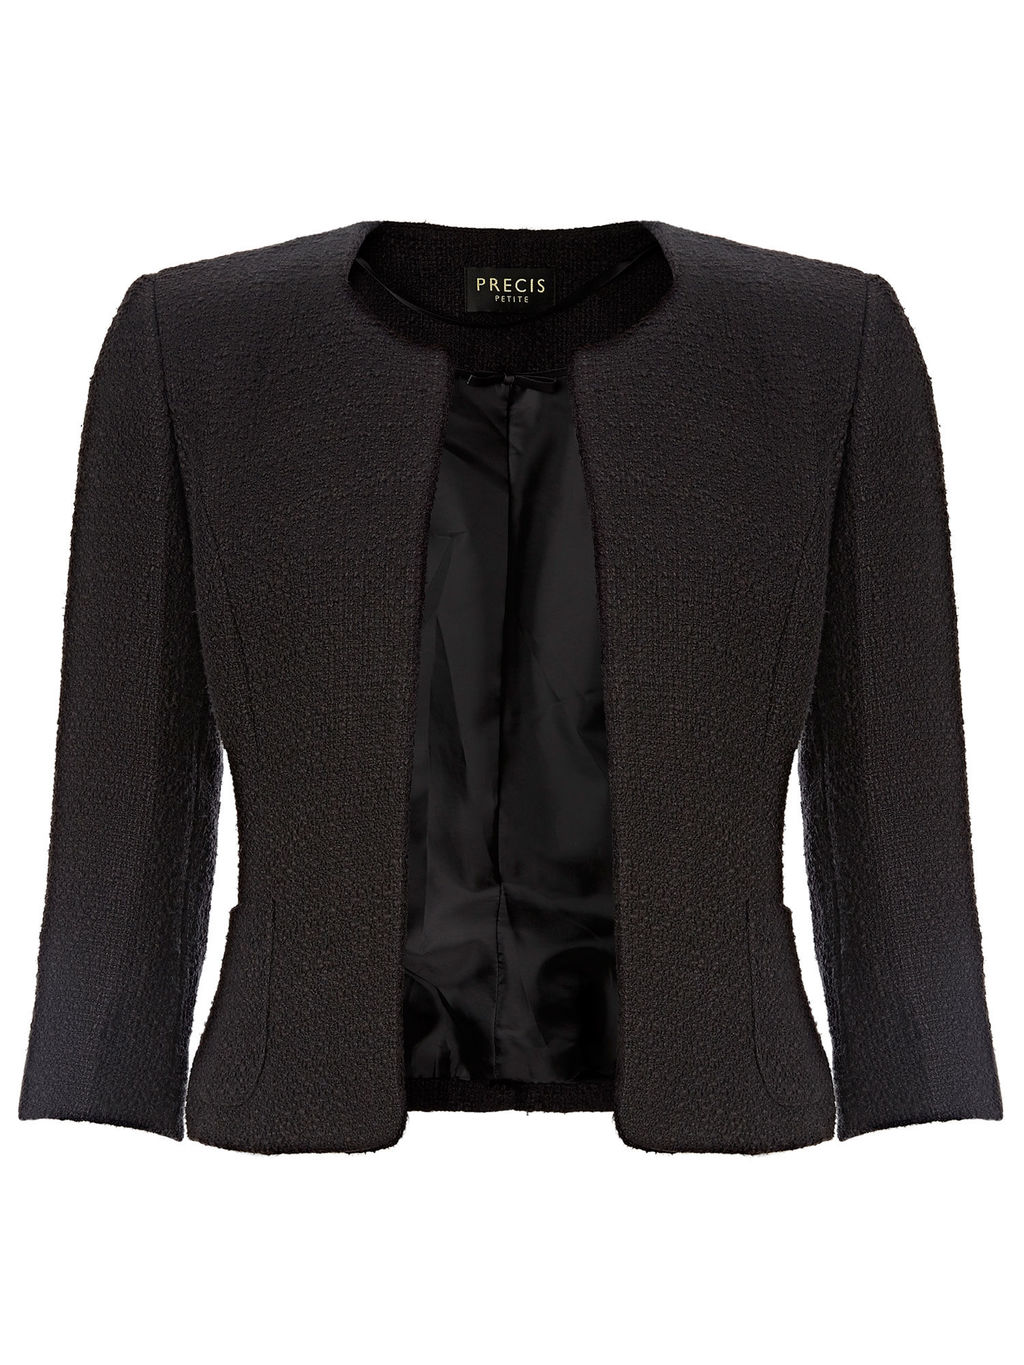 Textured Jacket - pattern: plain; style: single breasted blazer; collar: round collar/collarless; predominant colour: black; occasions: evening; length: standard; fit: tailored/fitted; fibres: cotton - mix; sleeve length: 3/4 length; sleeve style: standard; collar break: low/open; pattern type: fabric; texture group: woven light midweight; season: a/w 2015